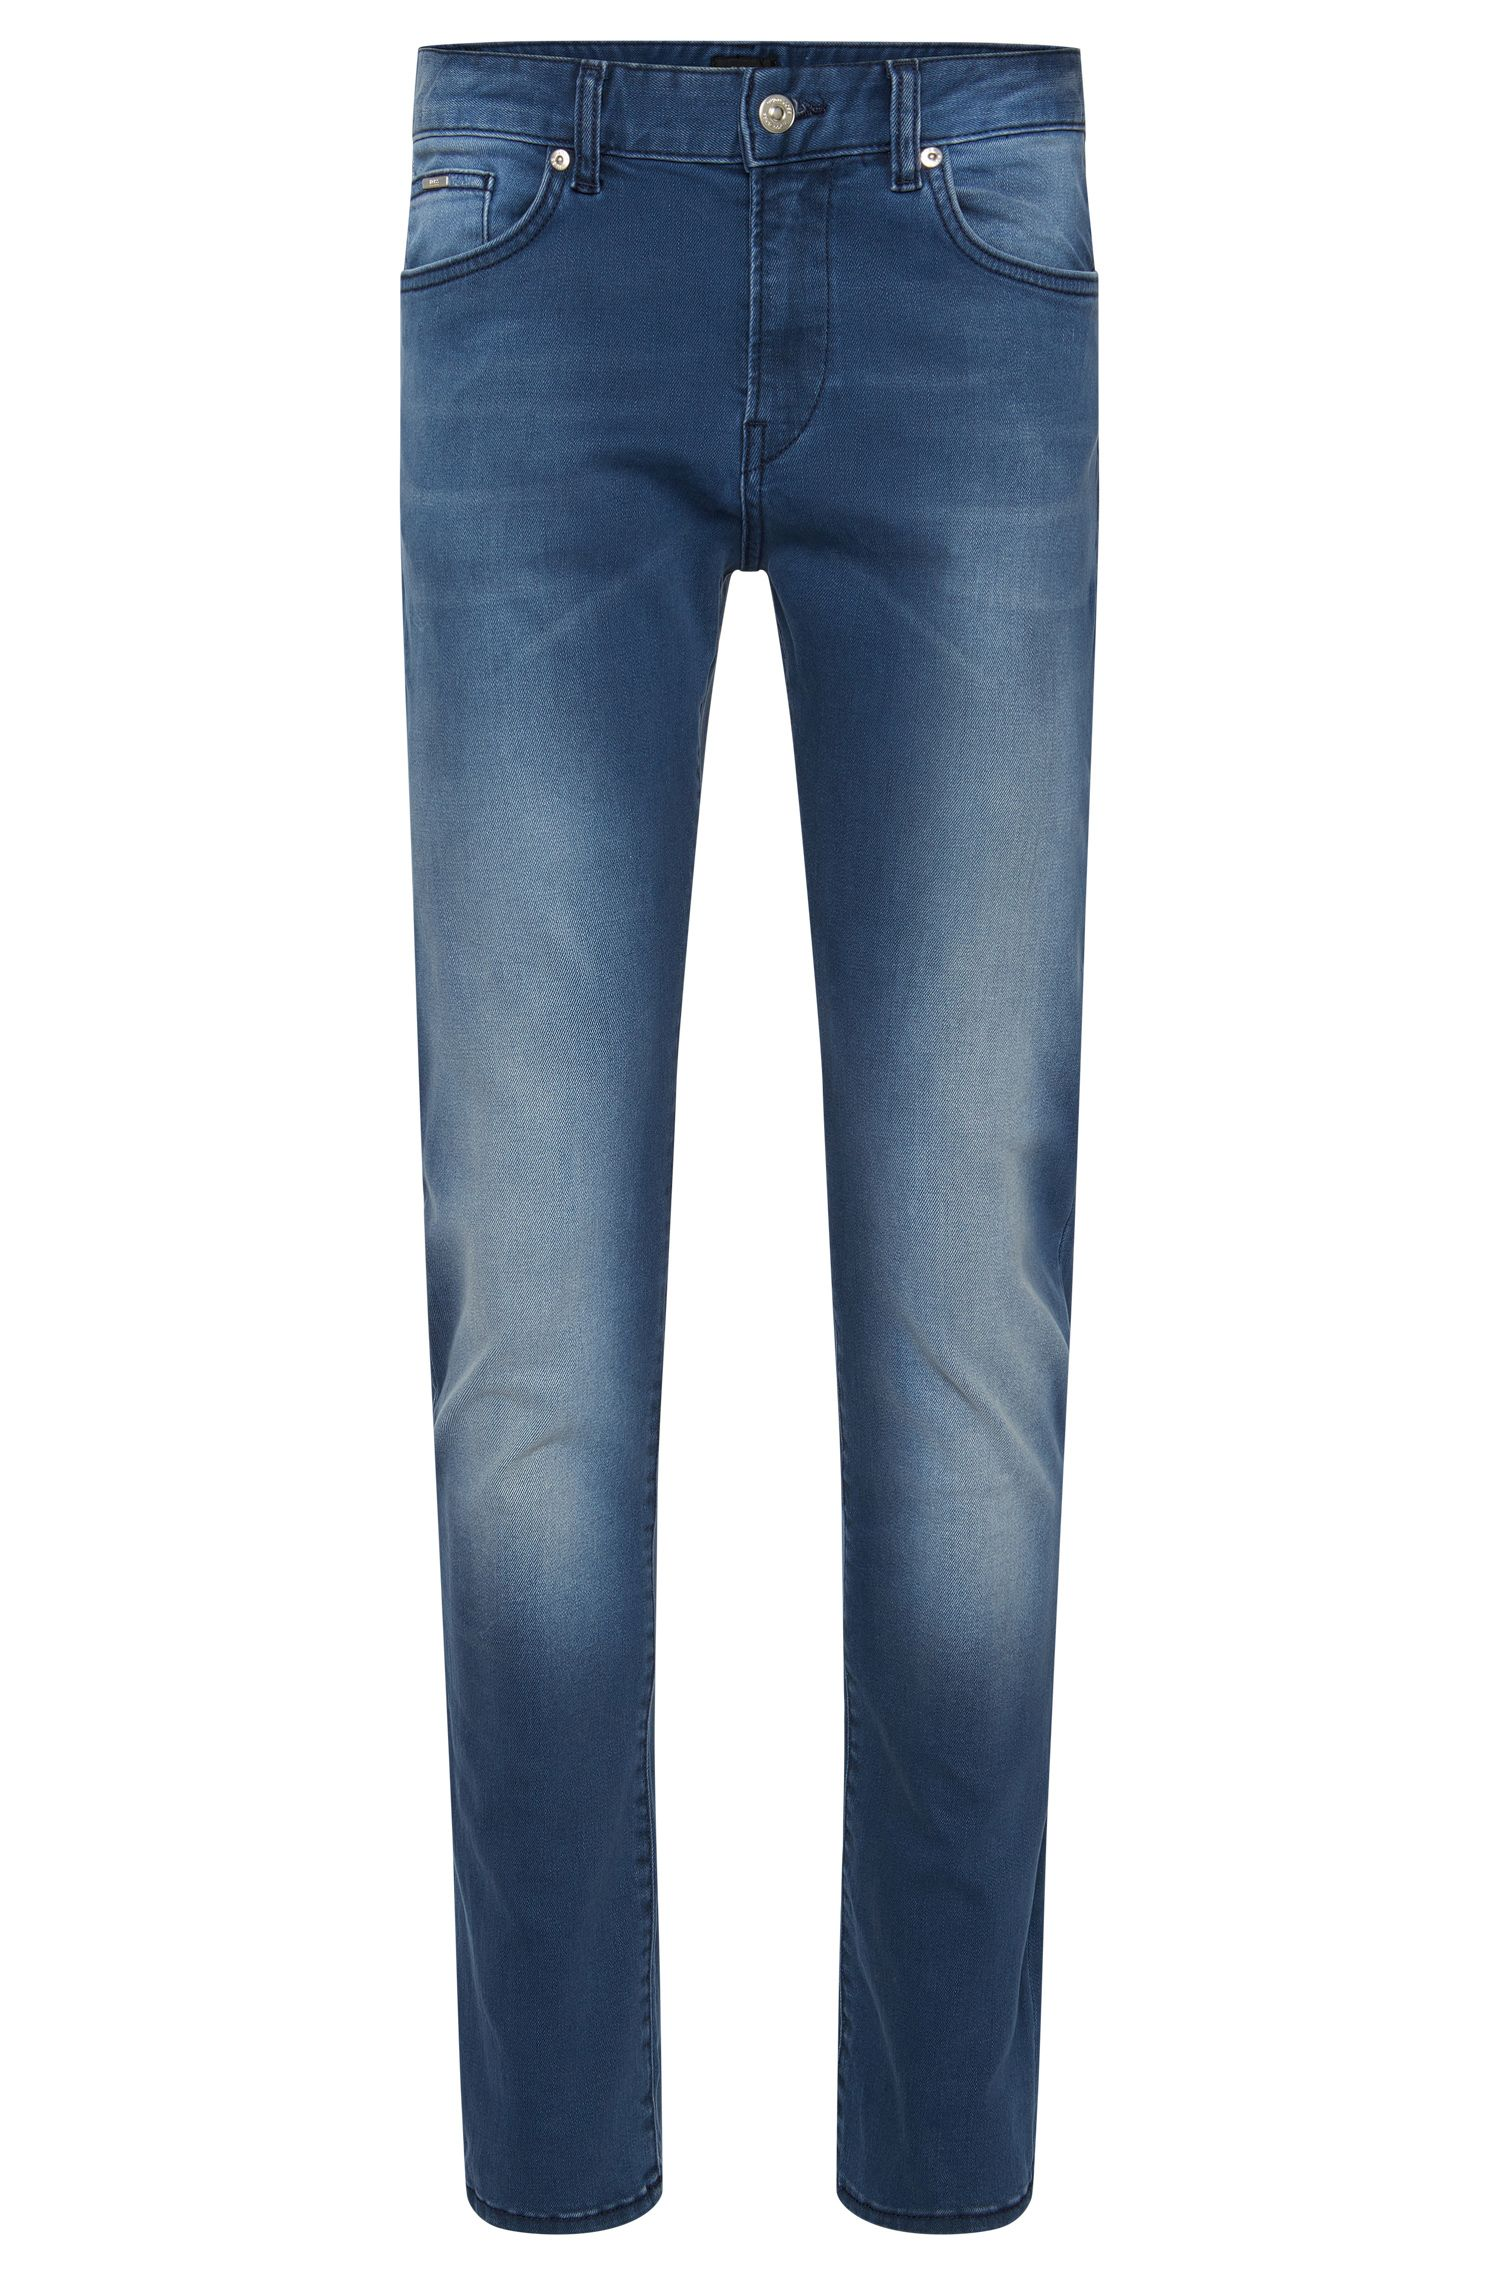 'Delaware' | Slim Fit, 11.25 oz Stretch Cotton Jeans